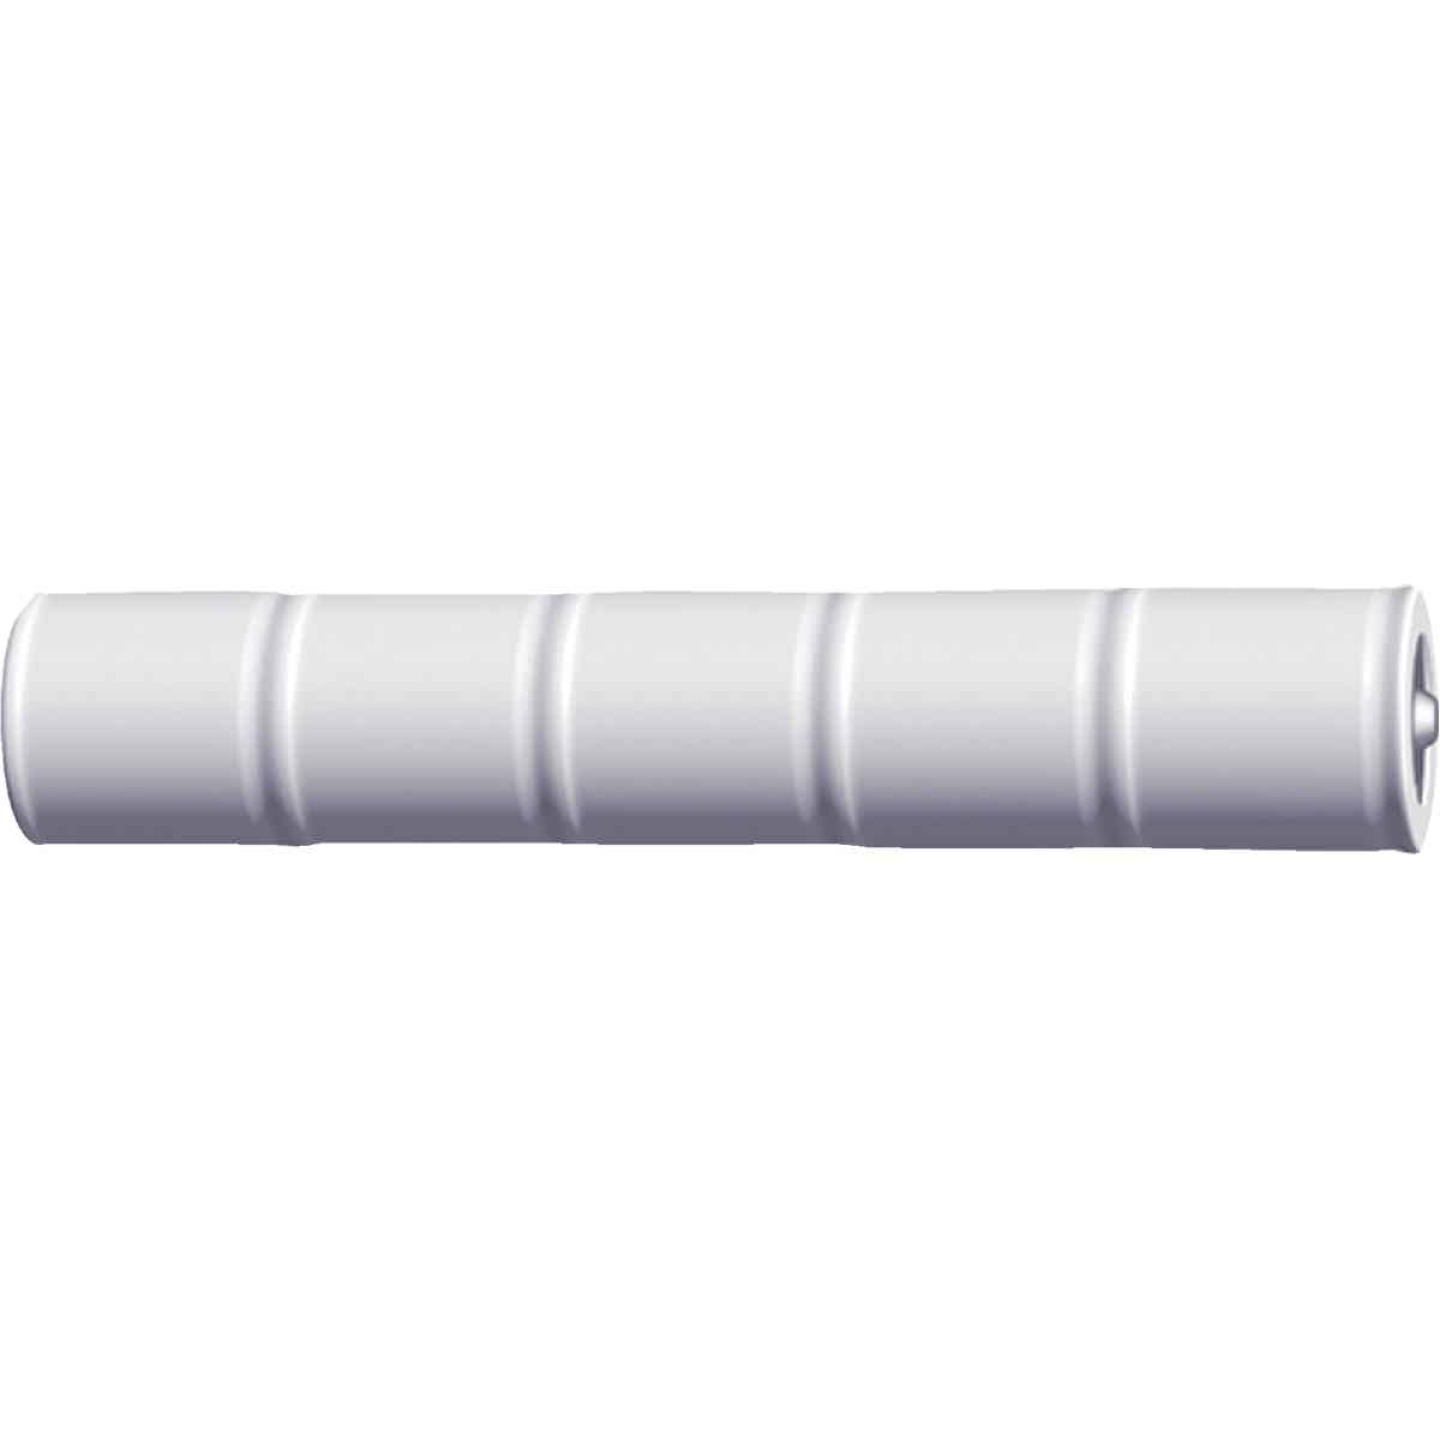 Maglite 6V NiMH Rechargeable Flashlight Battery Image 2